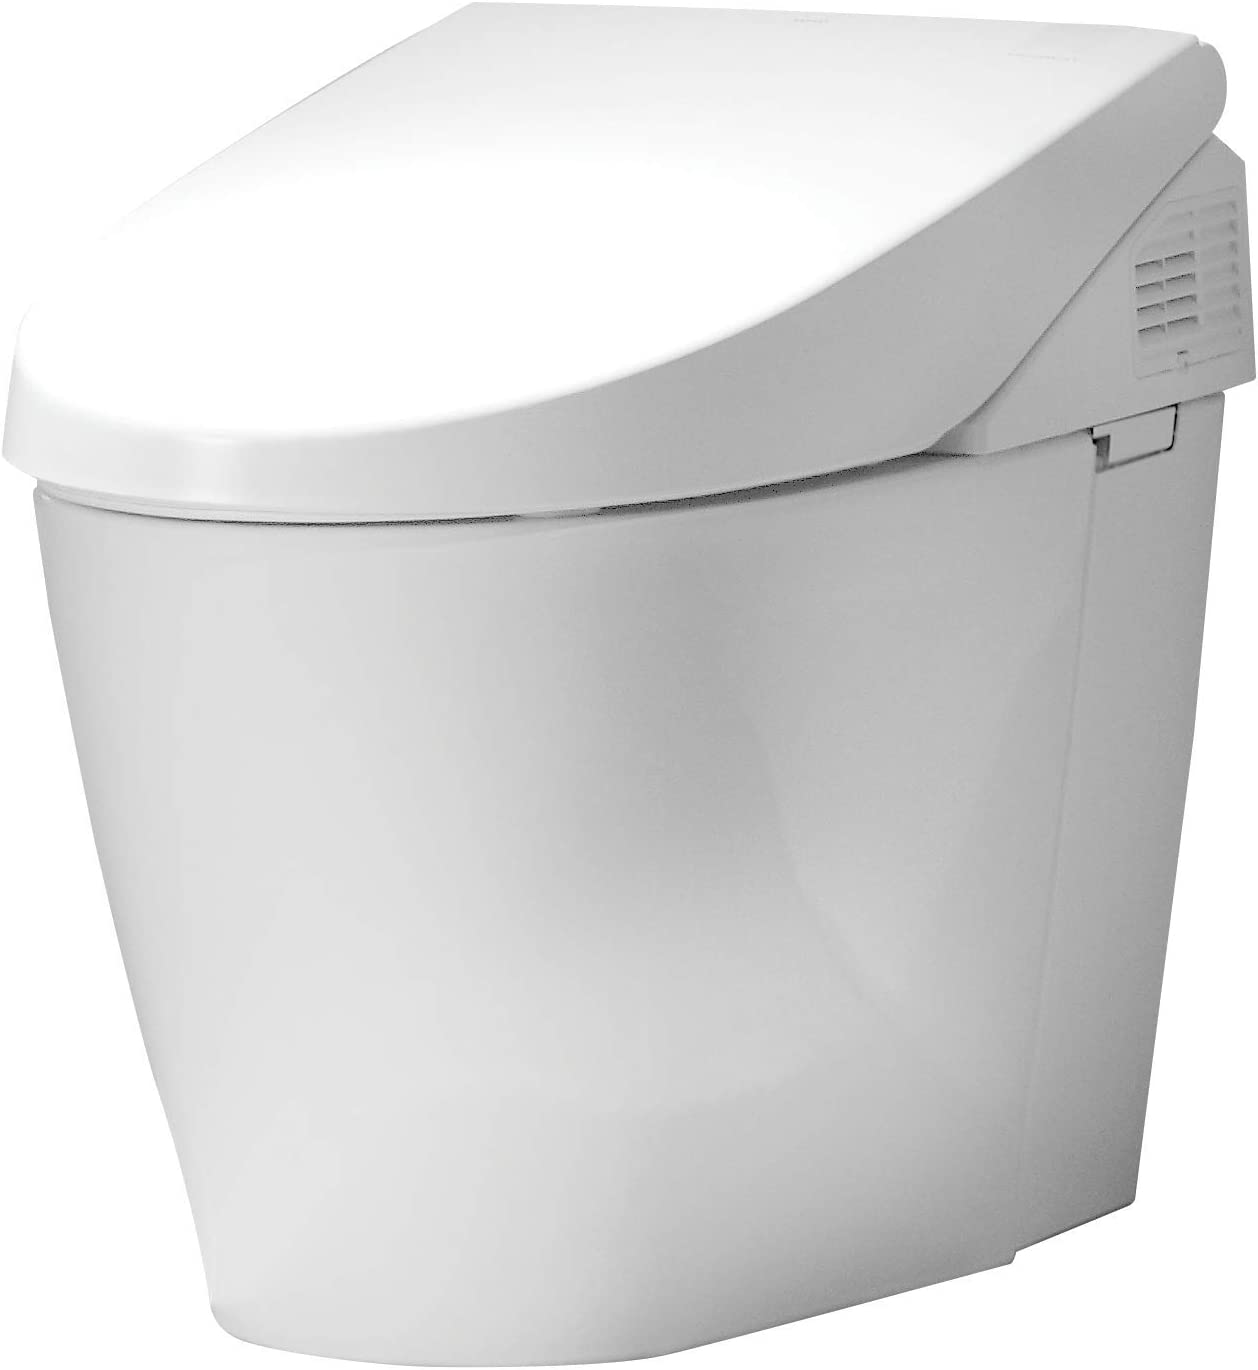 best tankless toilets: TOTO MS982CUMG#01 Neorest 550H